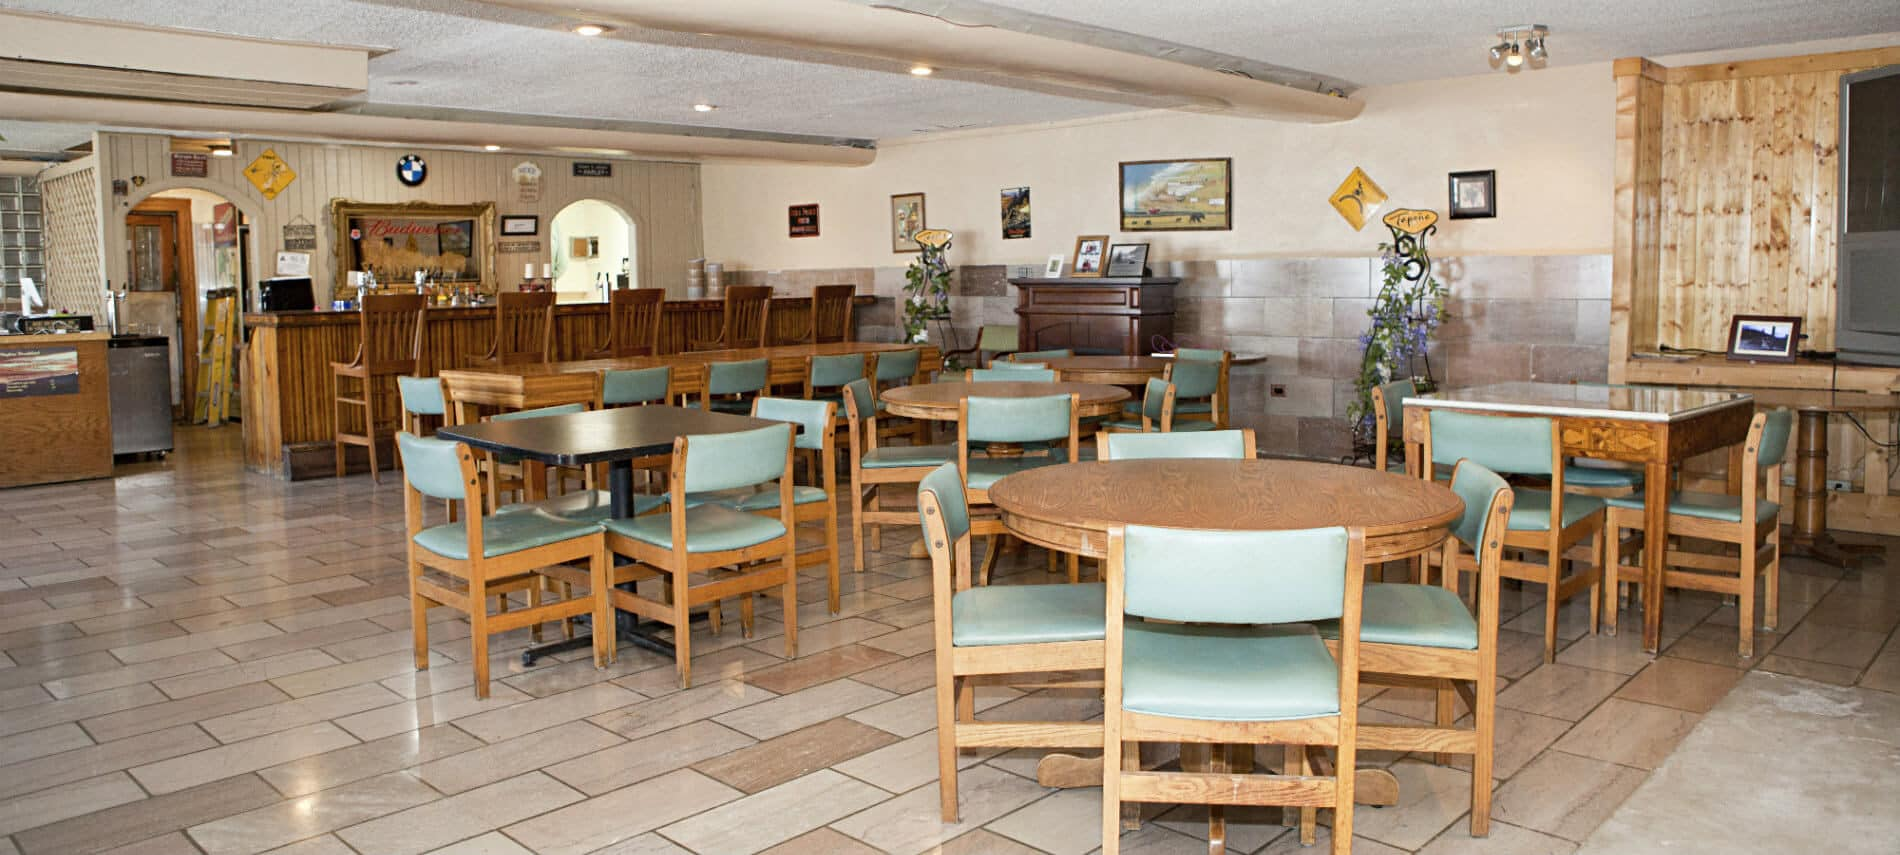 Spacious tavern with tile floor, several tables and chairs, and a bar with stools